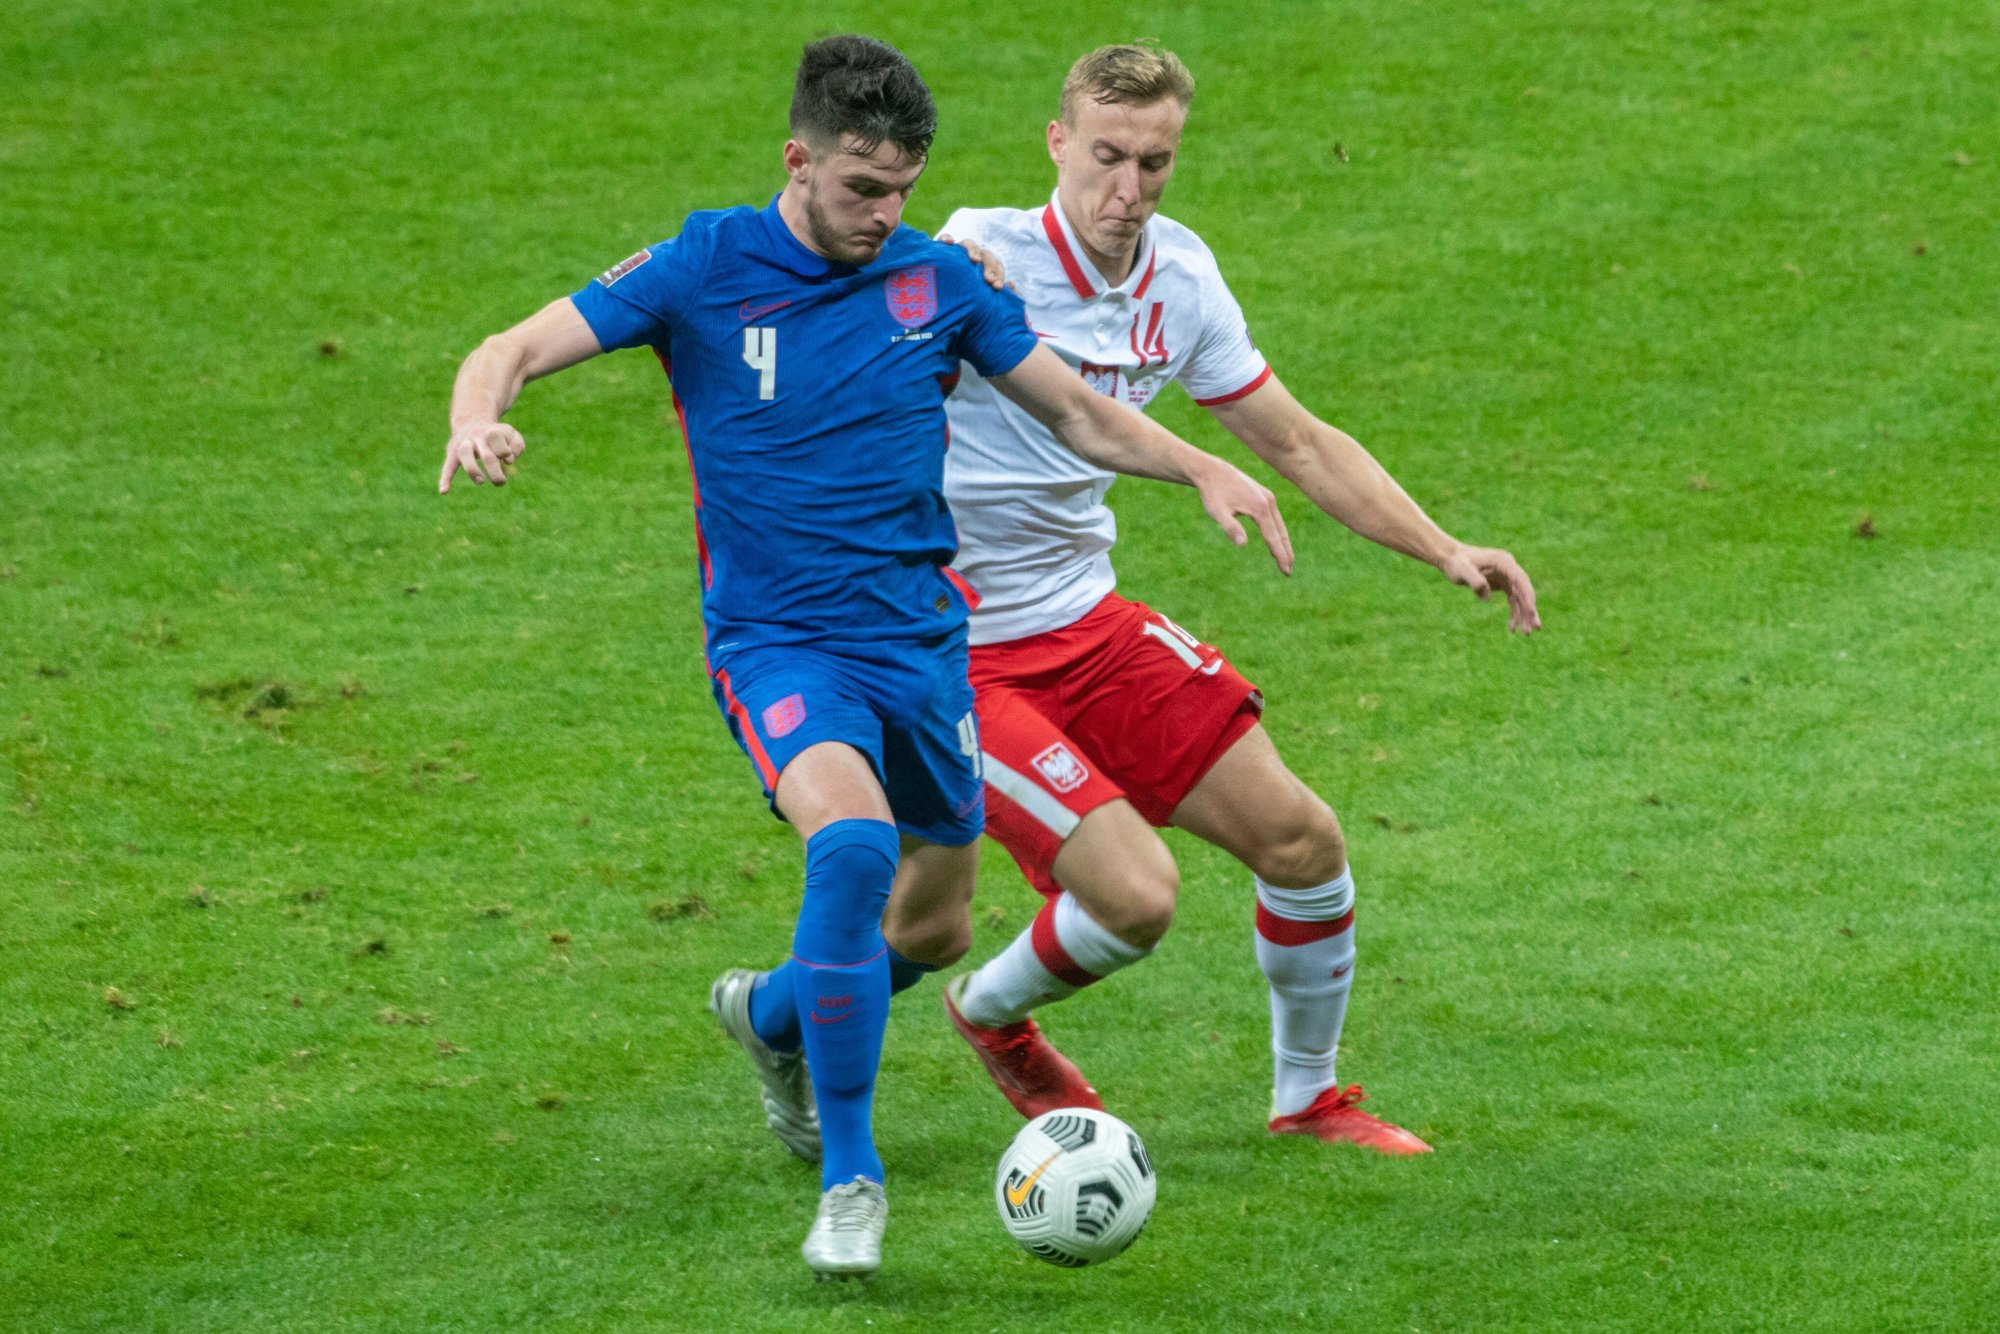 LIVE Football News: Follow Thursday's Stories After England's Draw In Poland - The Sportsman